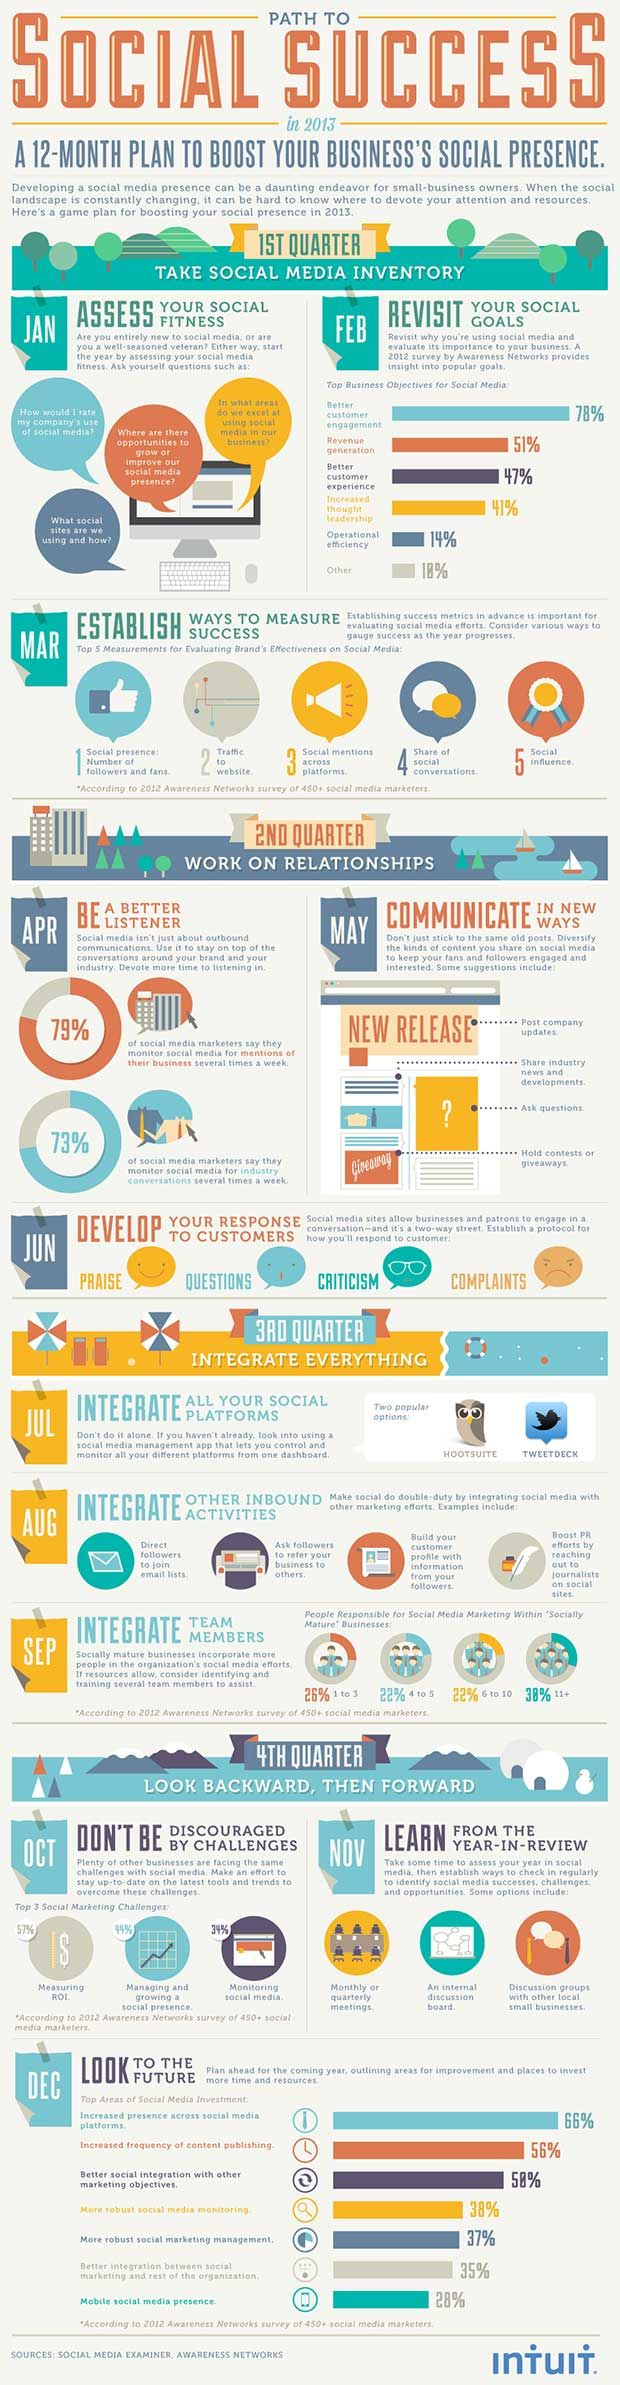 Make 2013 Your Best-Ever Year: A 12-Month Plan For Social Media Success [INFOGRAPHIC]   christiankonline.com